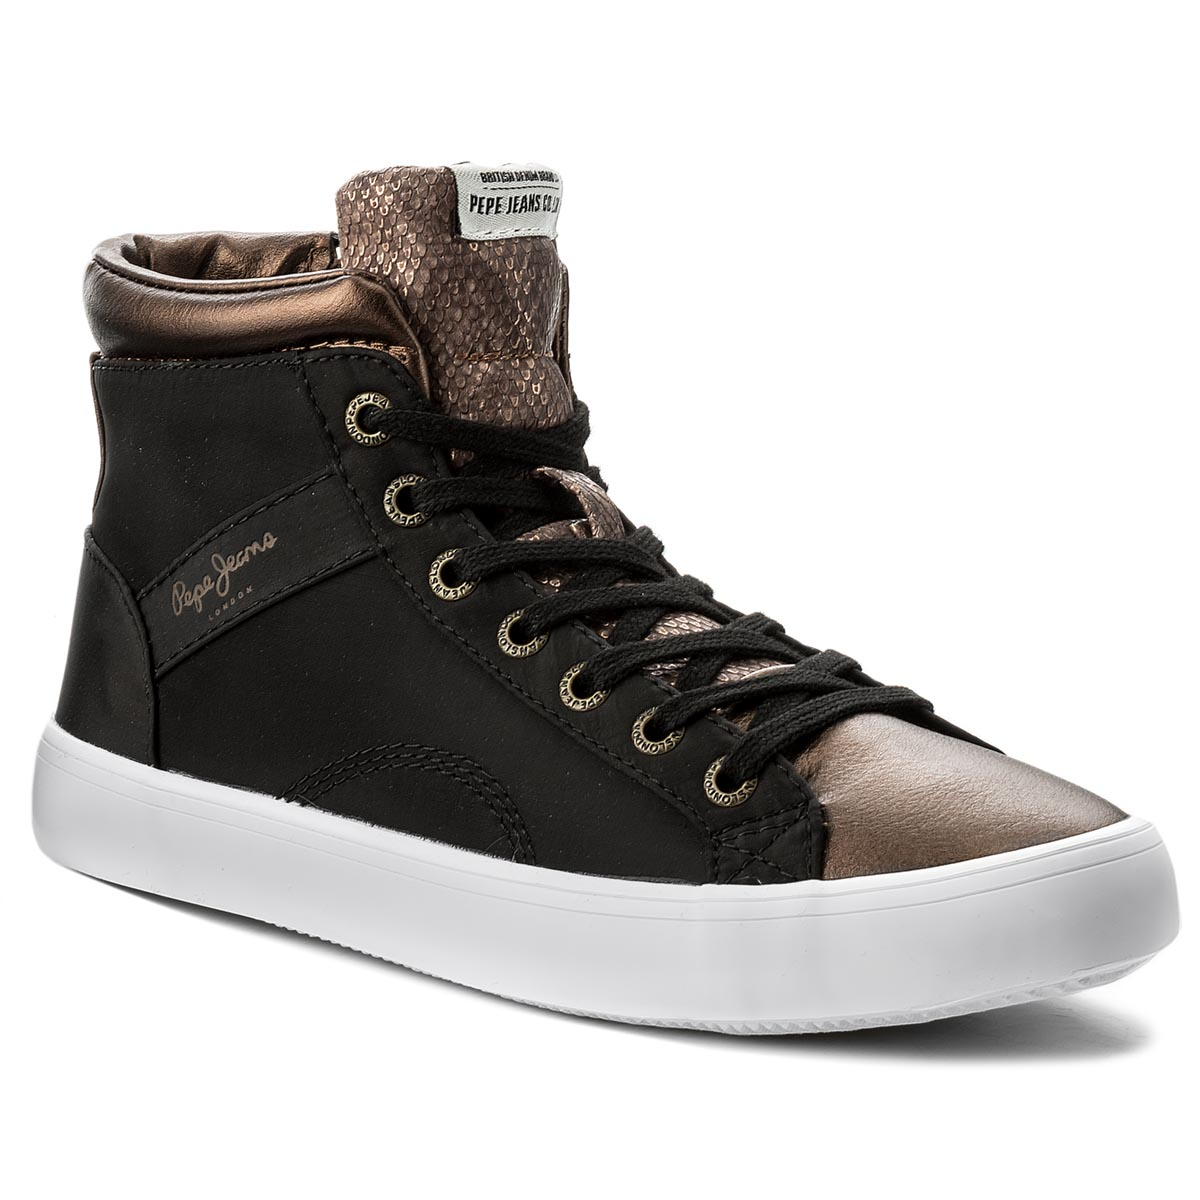 Sneakersy PEPE JEANS - Clinton Stars PLS30569  Black 999